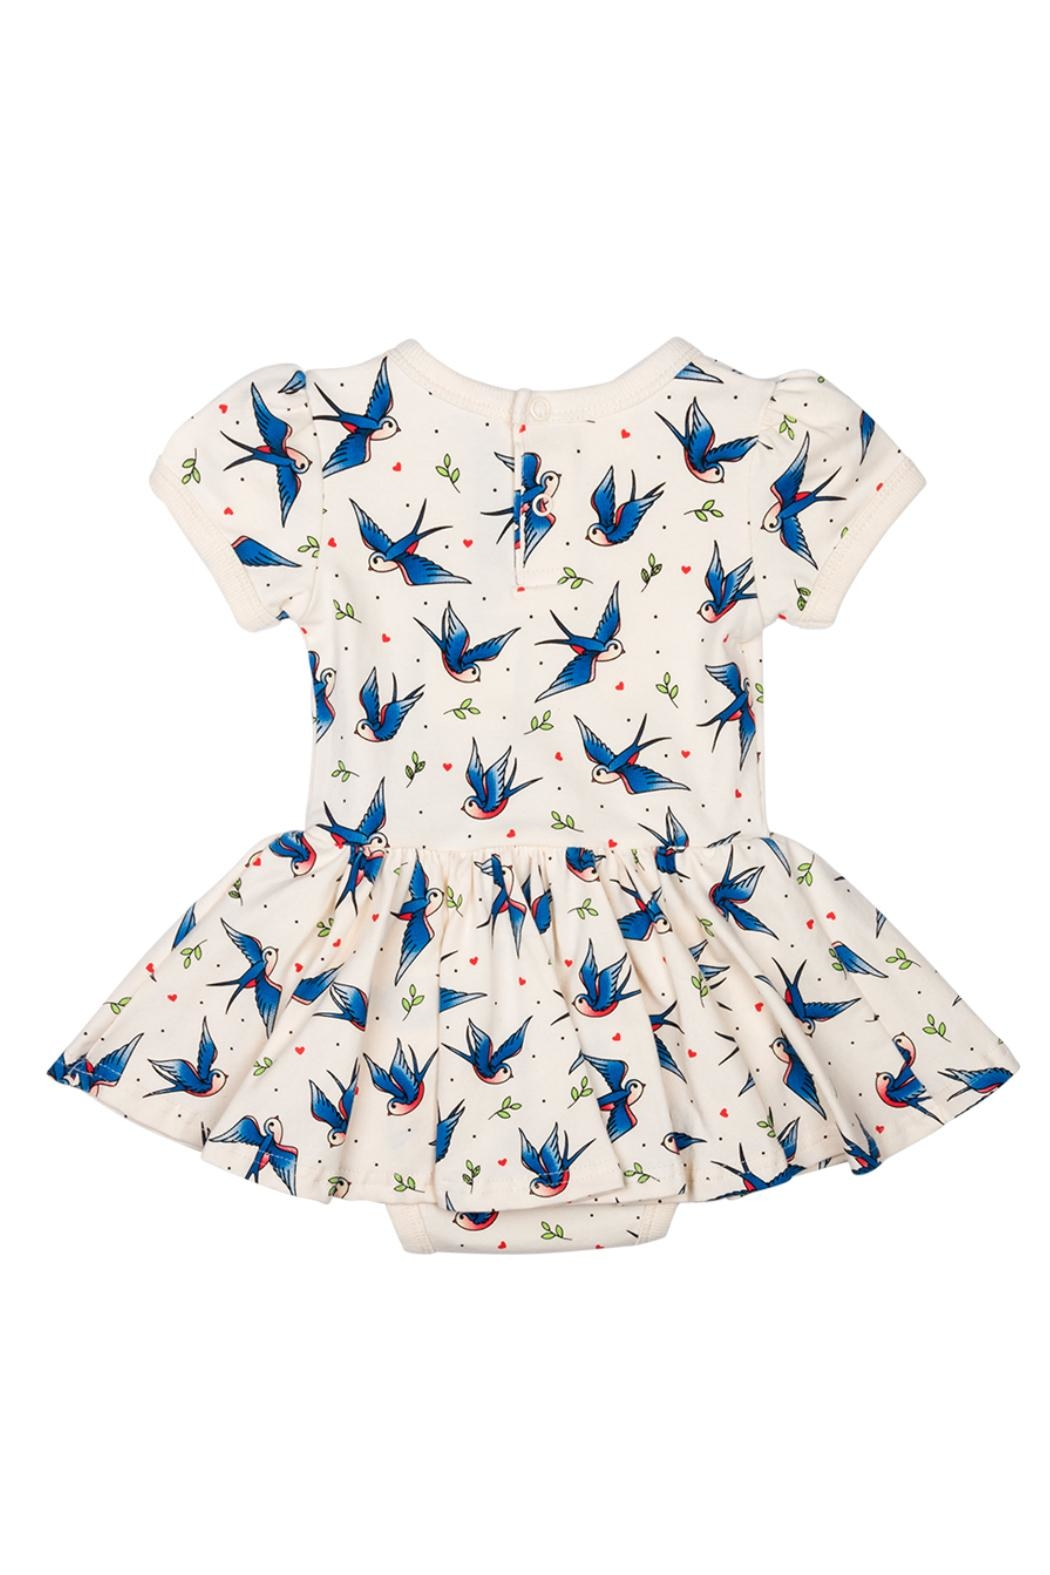 Rock Your Baby Blue Birds Dress - Front Full Image